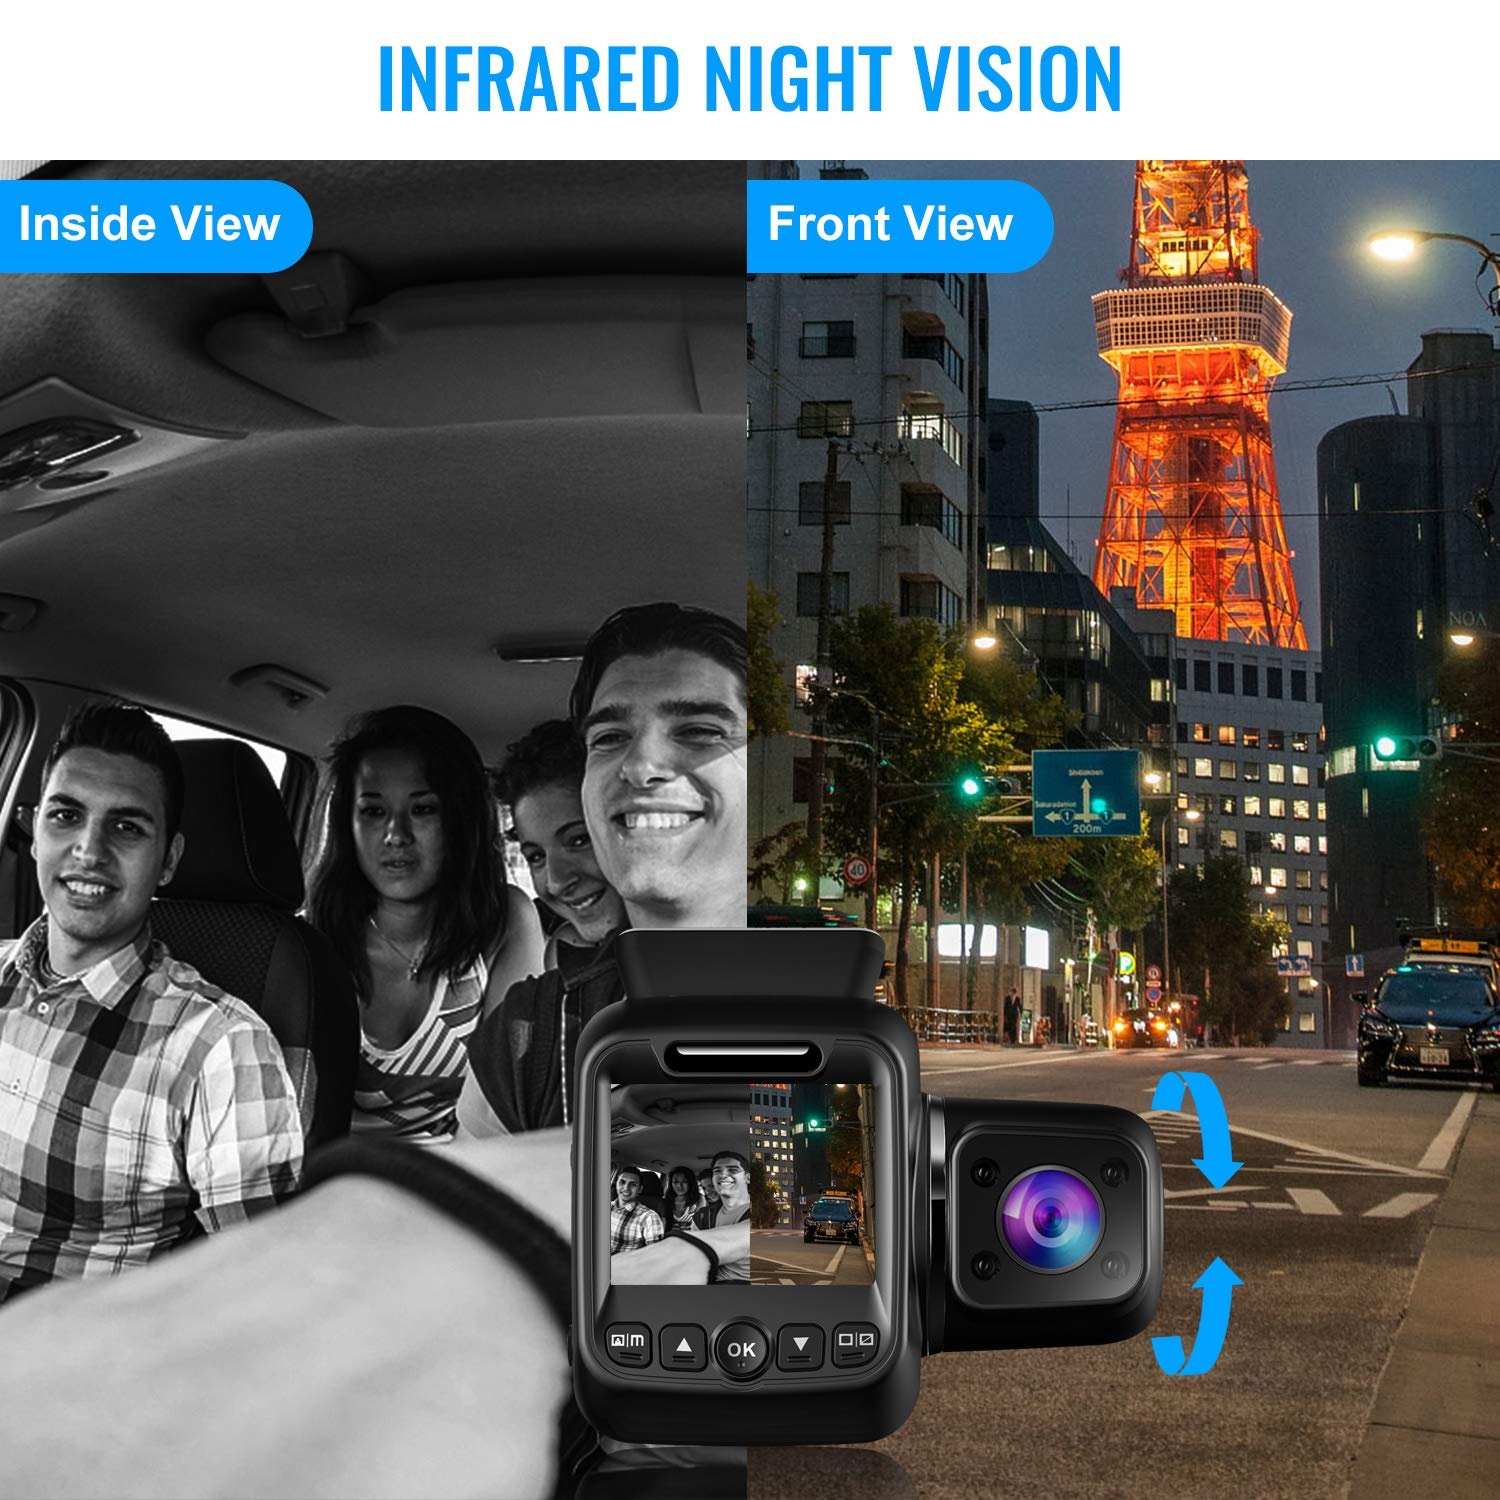 Upgraded Pruveeo P3 Dash Cam with Infrared Night Vision, Built-in GPS, WiFi, Dual 1080P Front and Inside, Dash Camera for Cars Uber Lyft Truck Taxi by Pruveeo (Image #3)